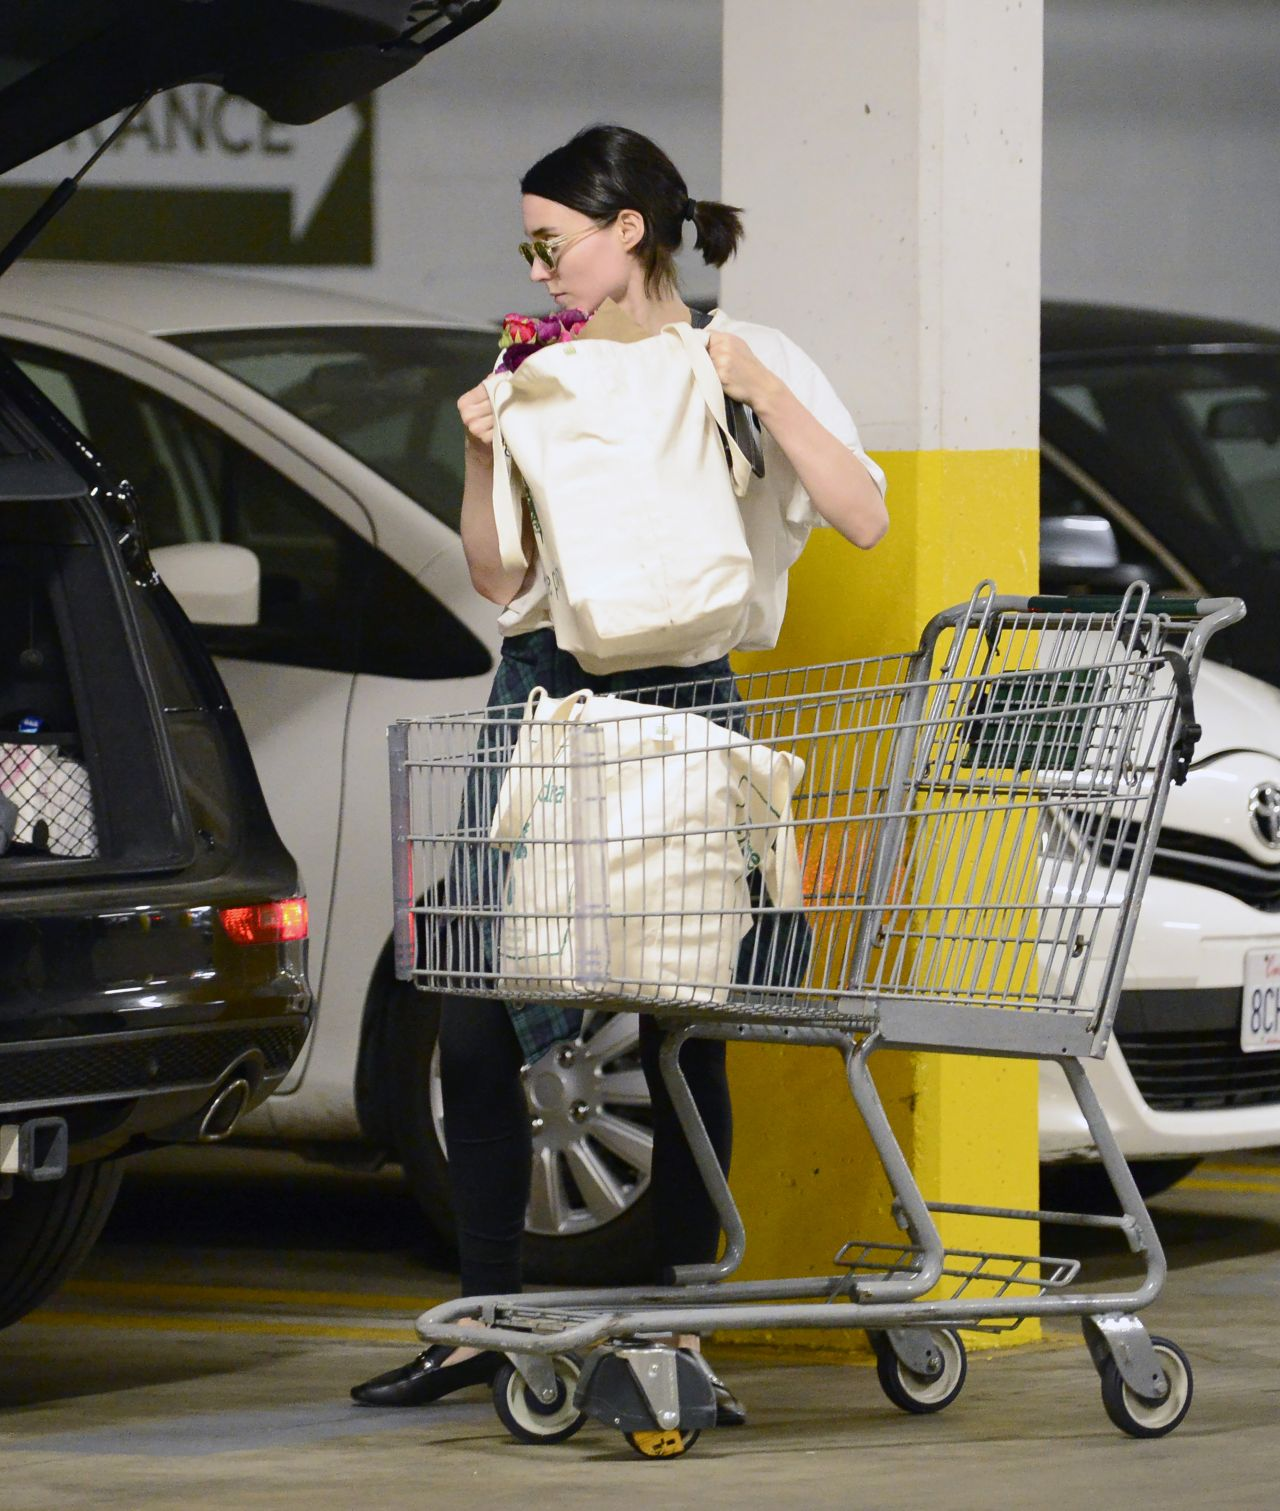 Grocery Stores Los Angeles: Grocery Shopping At A Health Food Store In